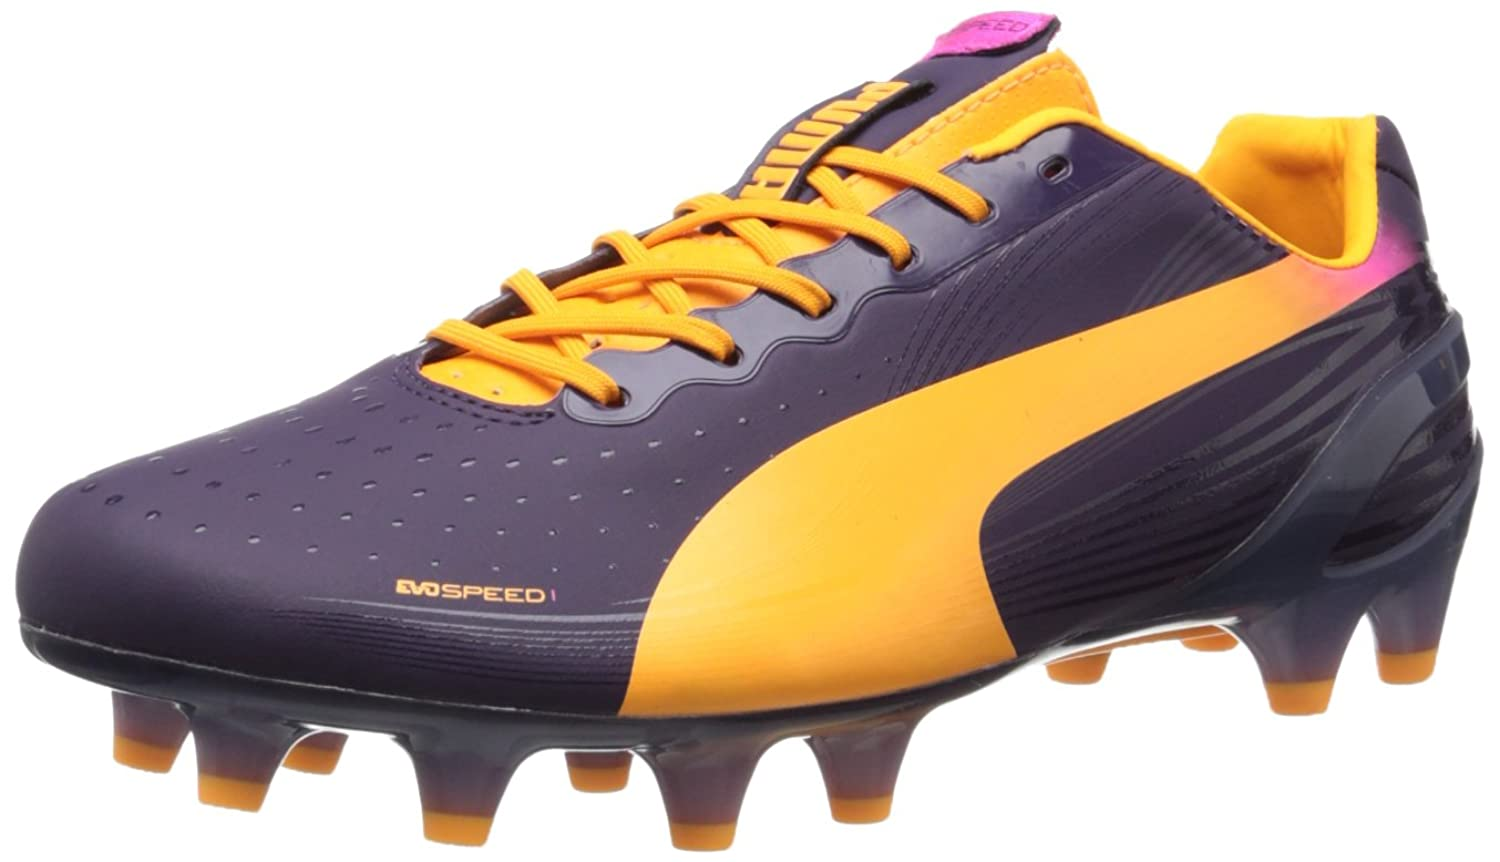 Mens PUMA Men's evo SPEED 1 2 Tricks FG Soccer Cleat Factory Price Size 44